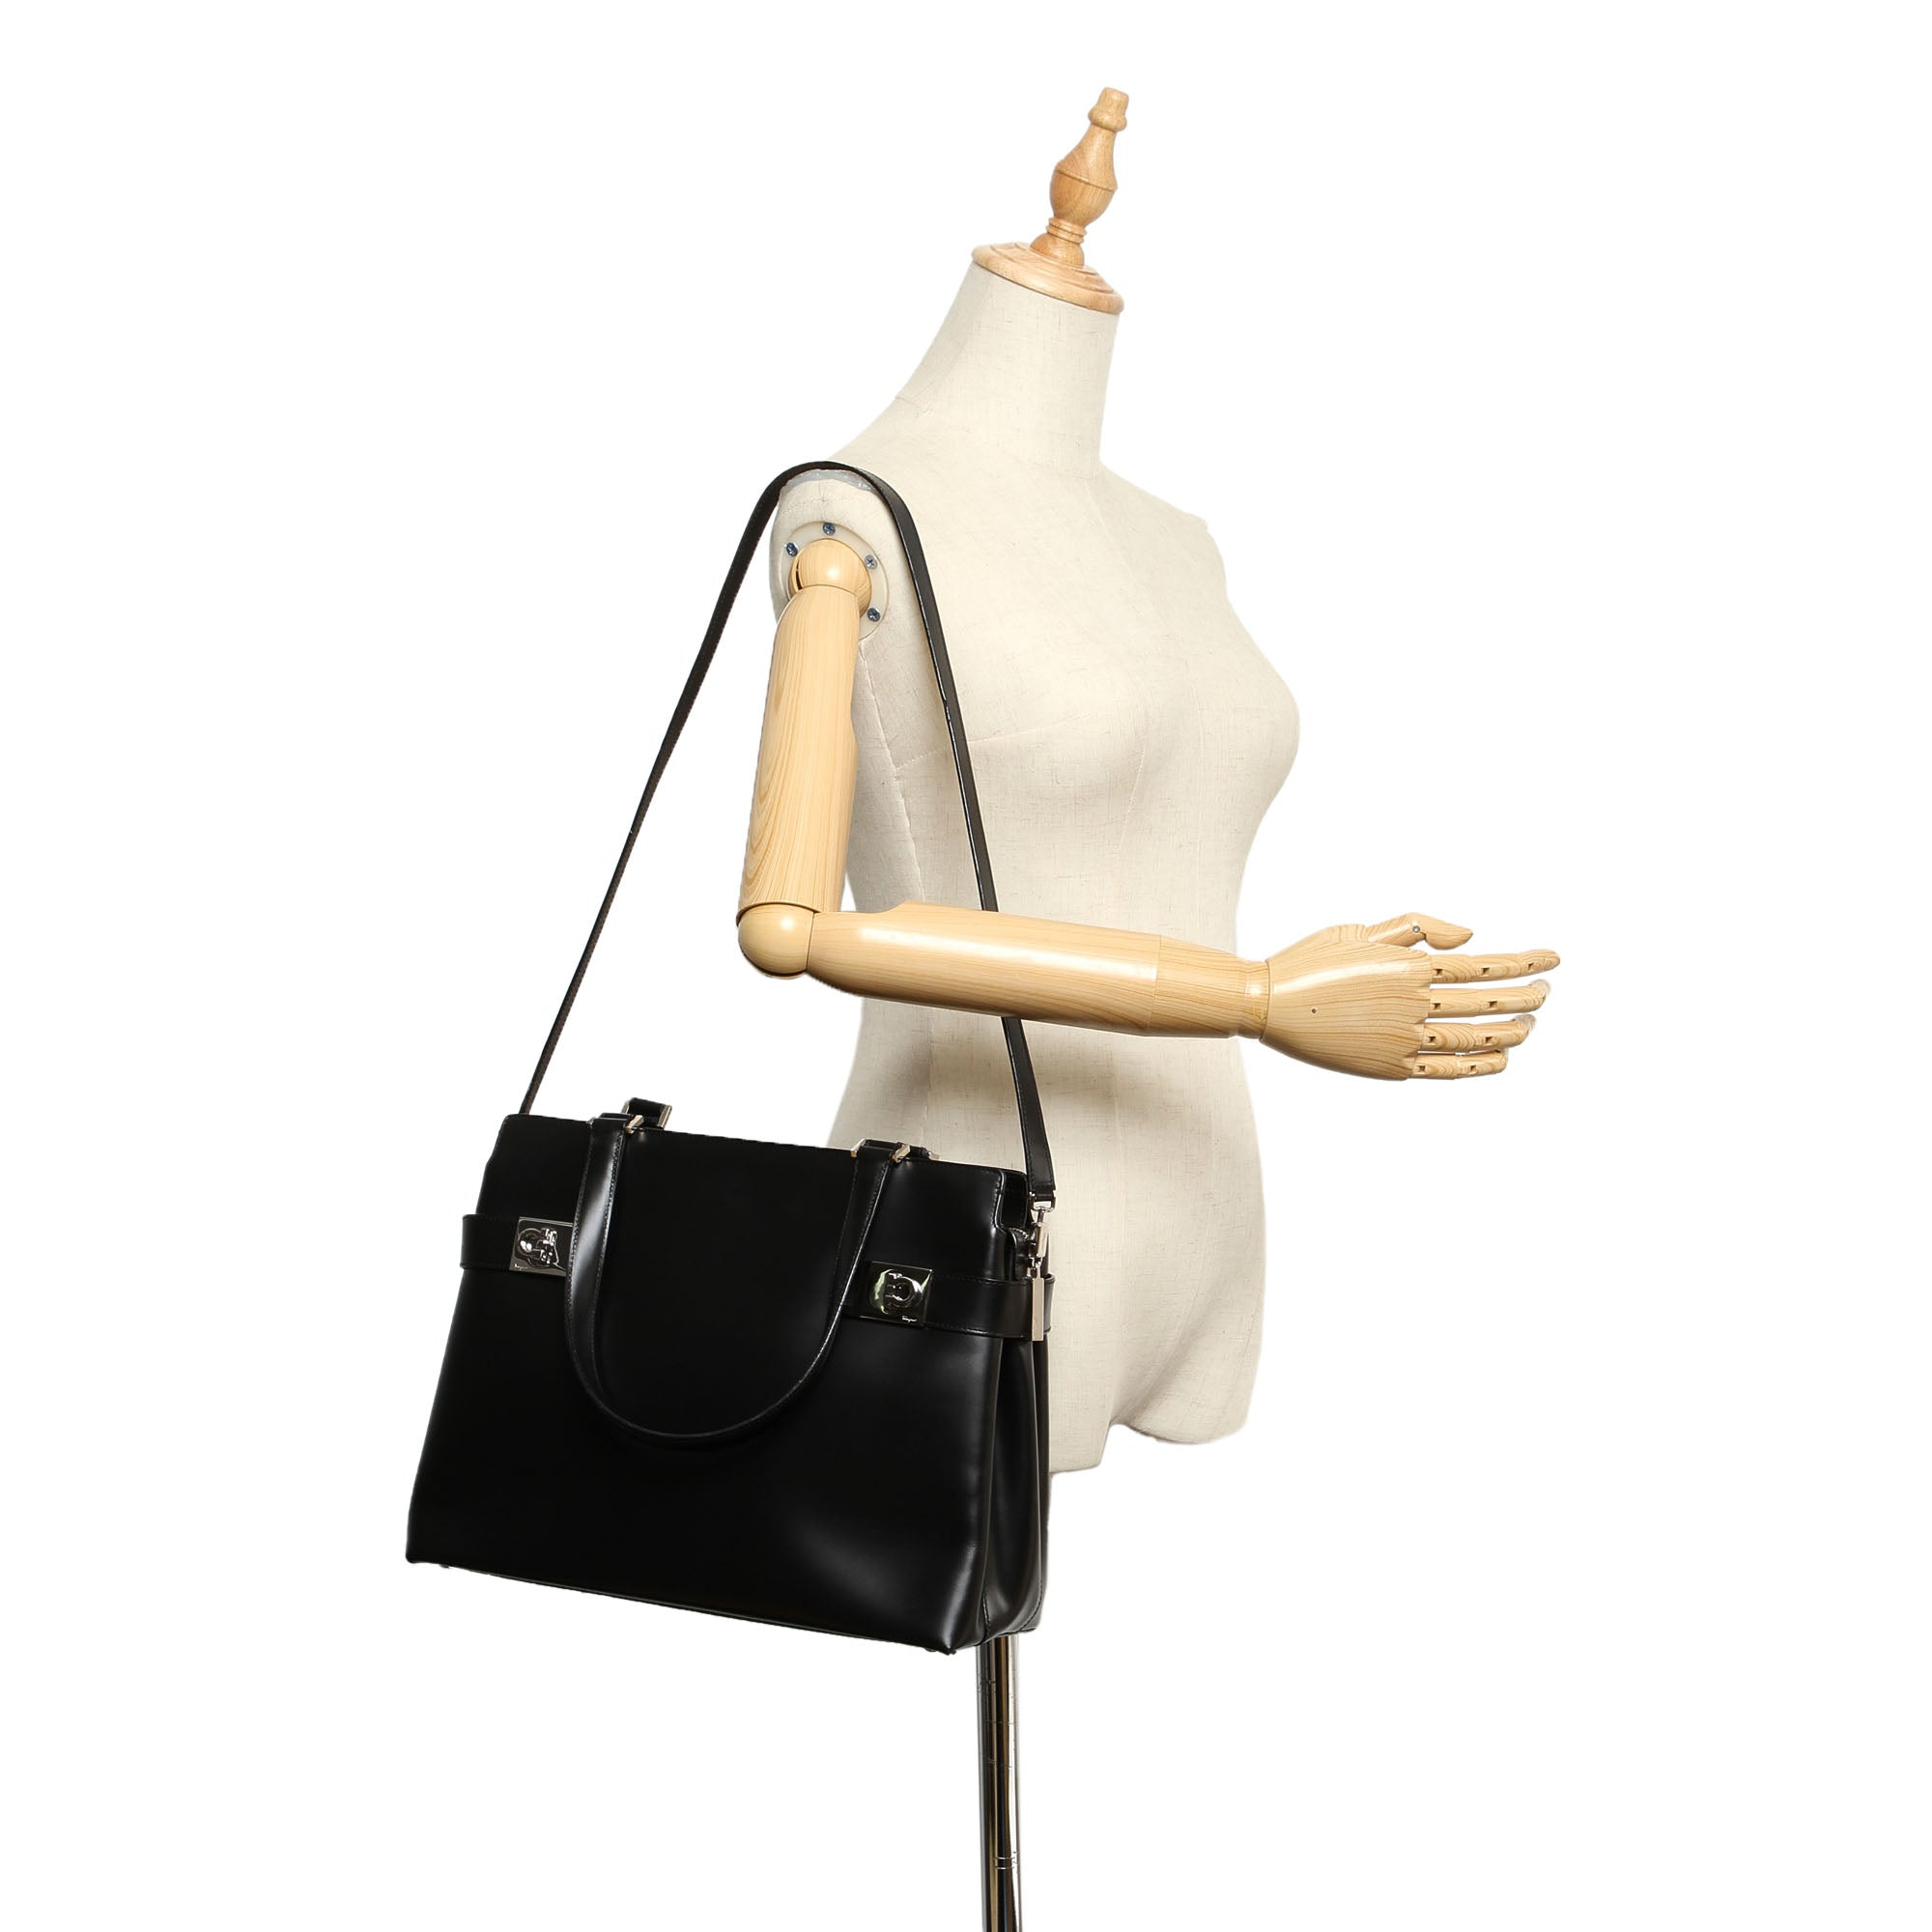 Ferragamo Black Gancini Leather Tote Bag